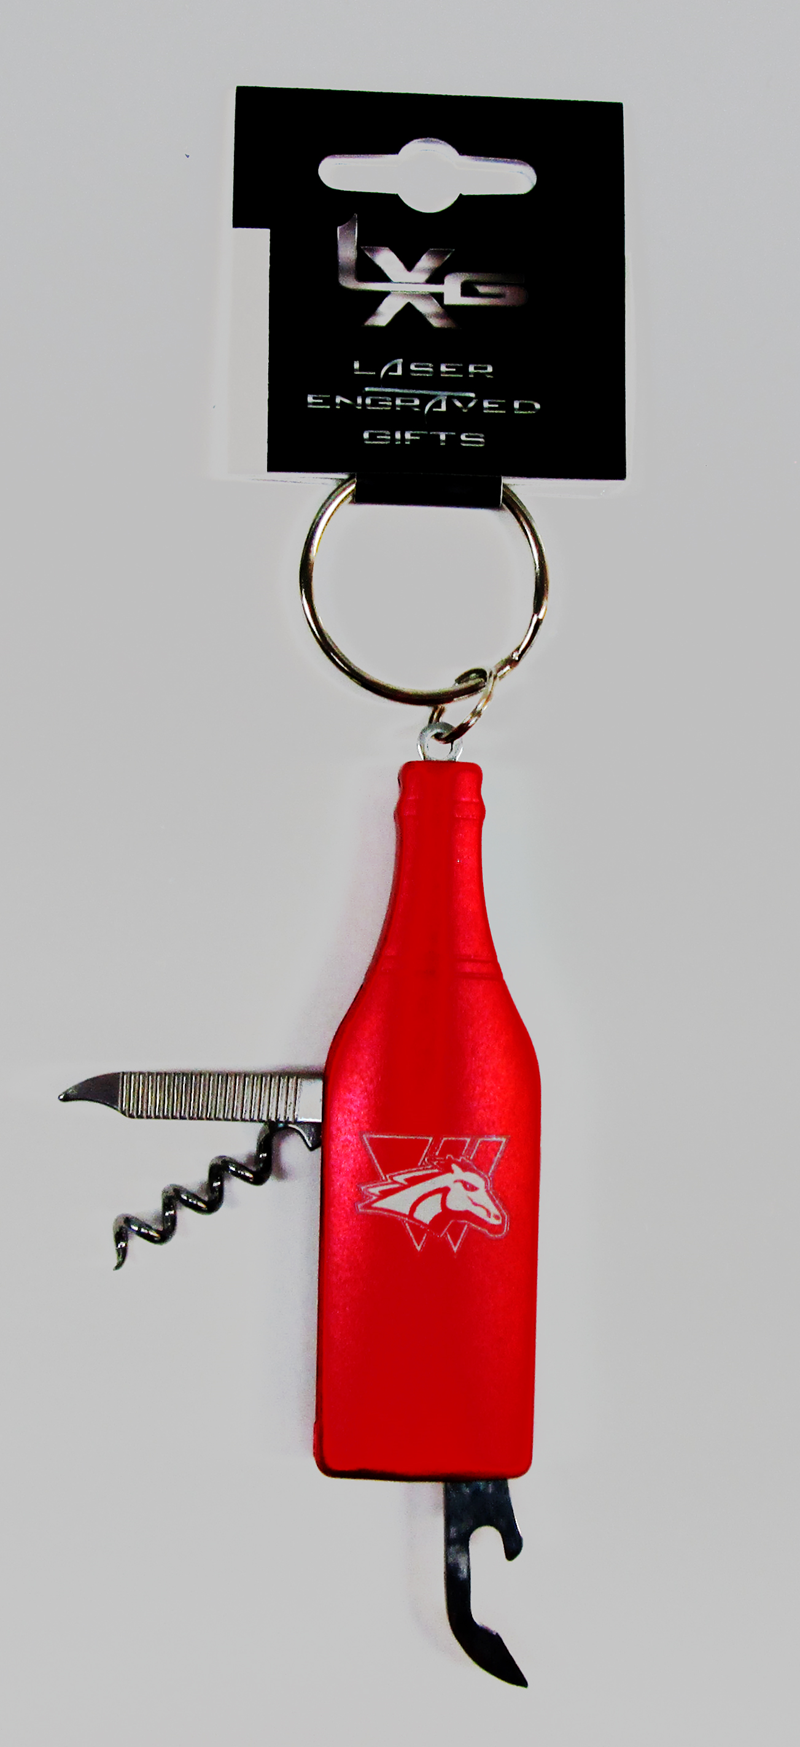 Bottle Shaped Bottle Opener (SKU 1024667210)